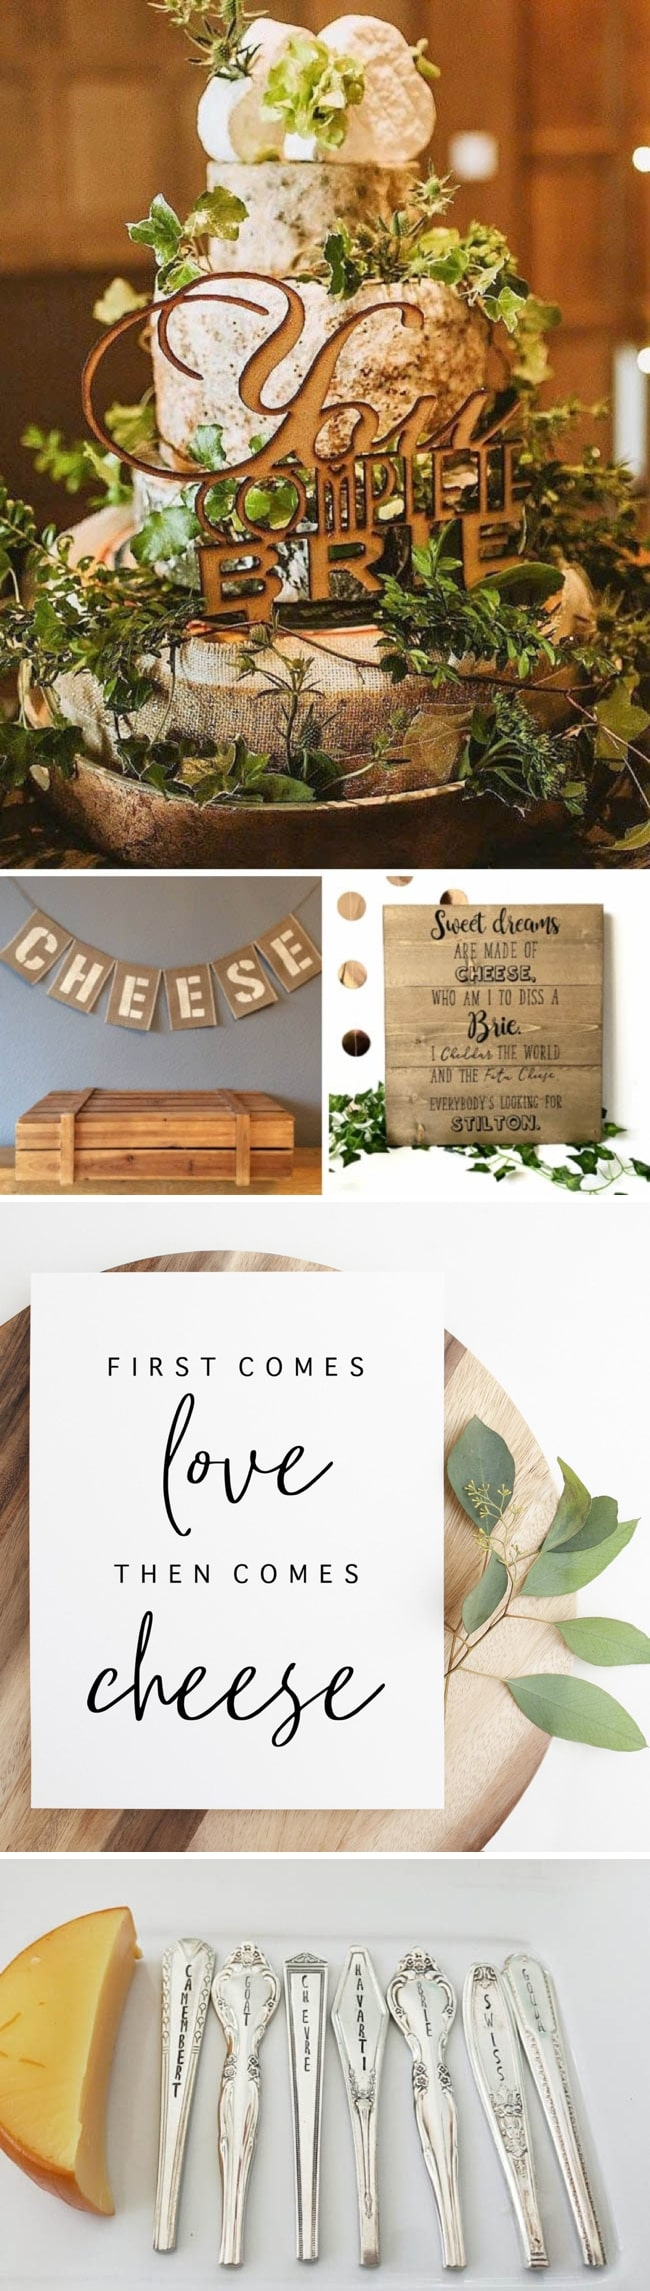 Dessert-Table-Alternatives-Cheese-Table-Accessories